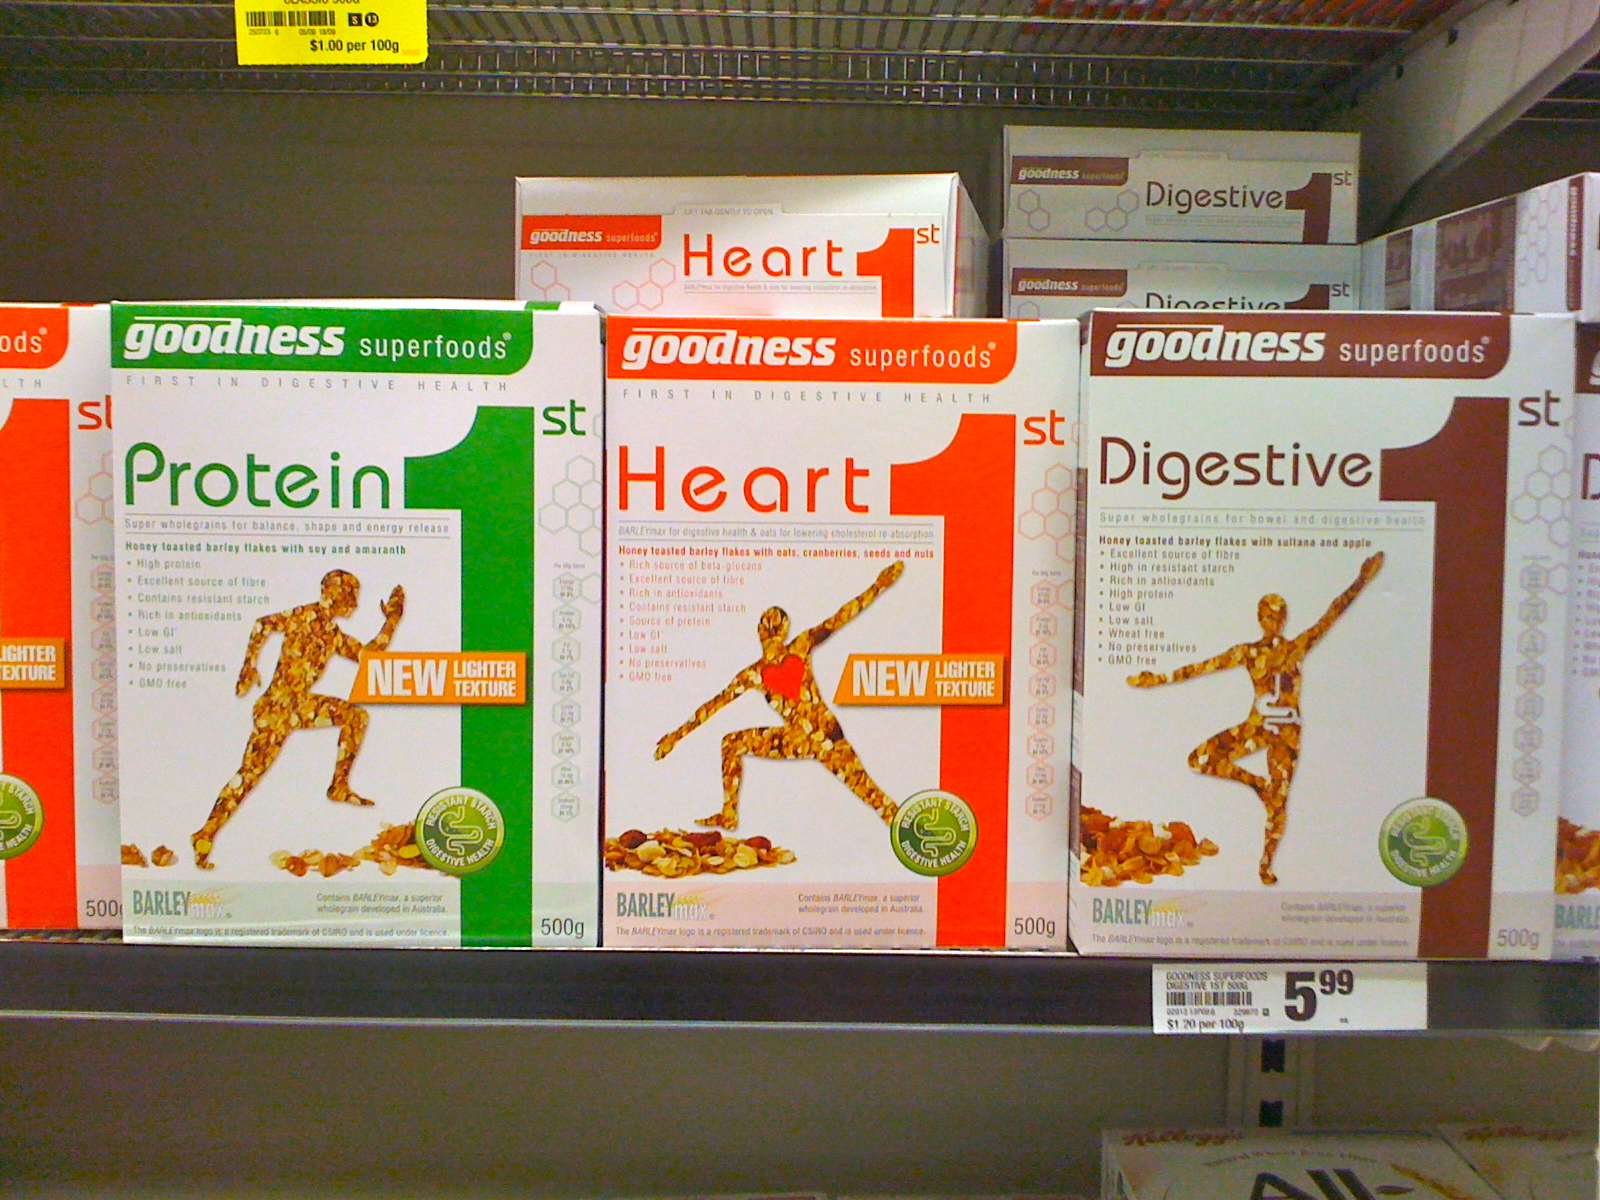 Goodness Superfoods range of BARLEYmax containing cereals with resistant starch